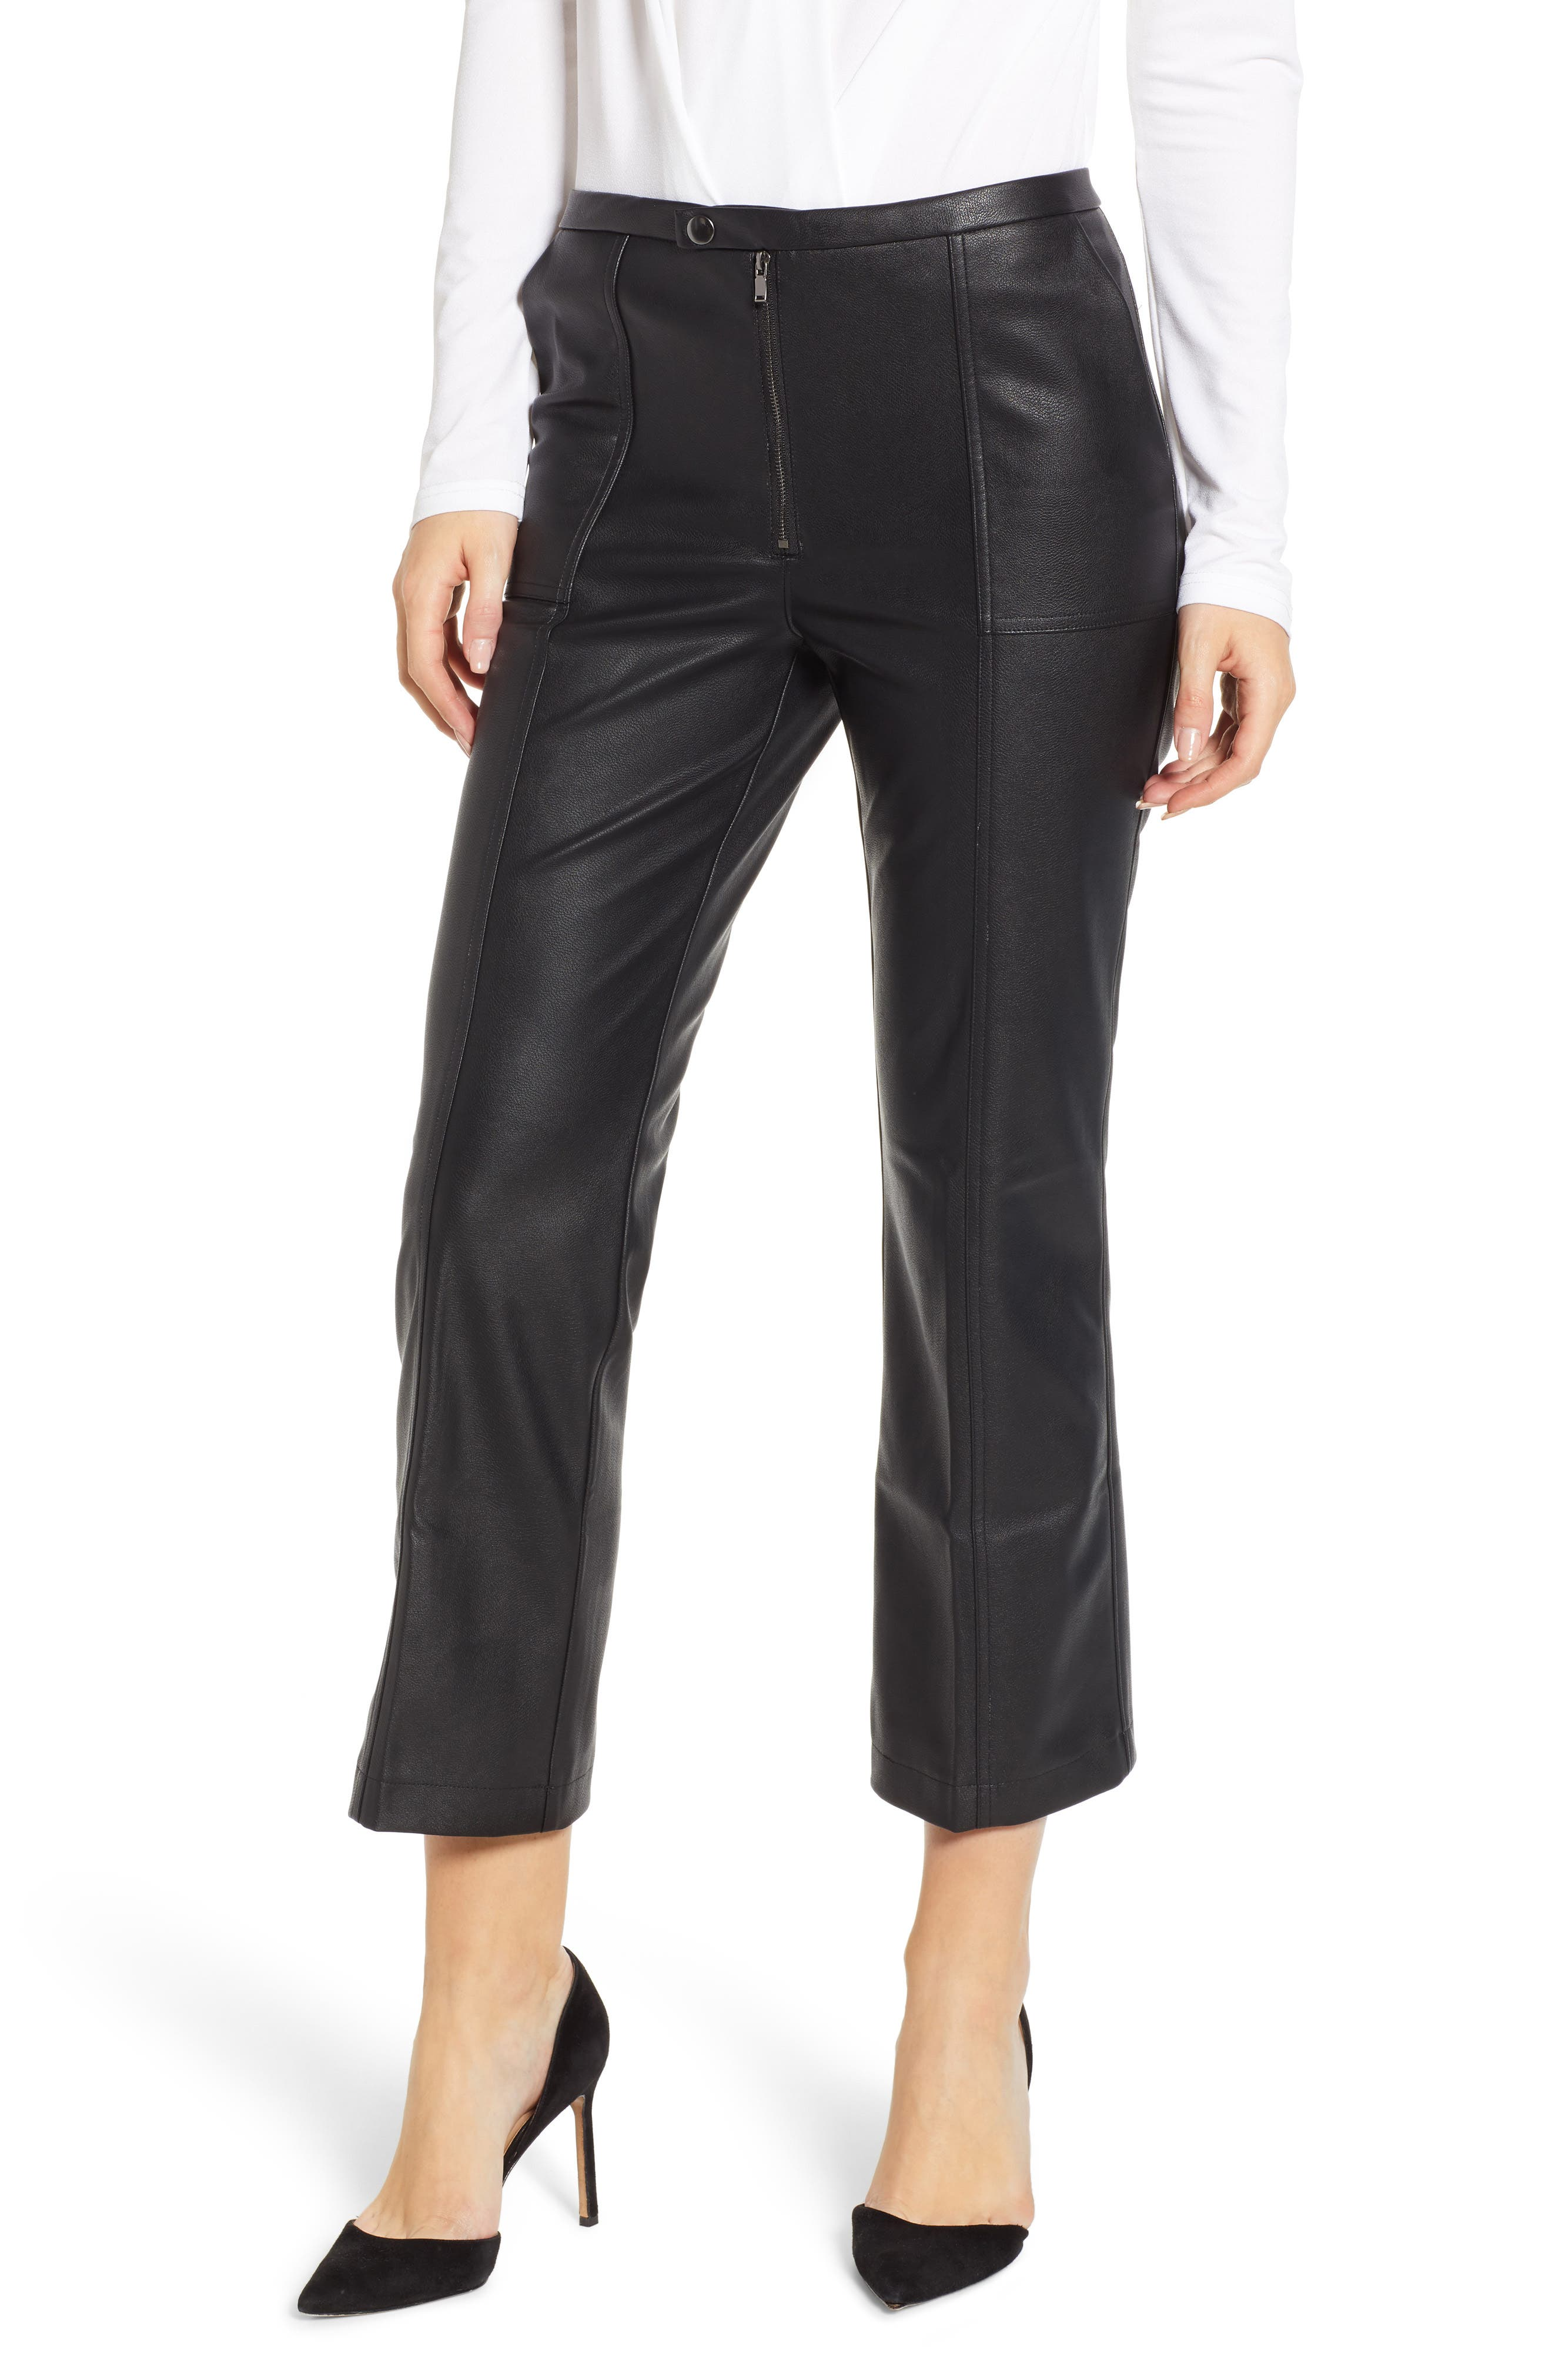 DAVID LERNER, Pintuck Flare Faux Leather Trousers, Main thumbnail 1, color, 001